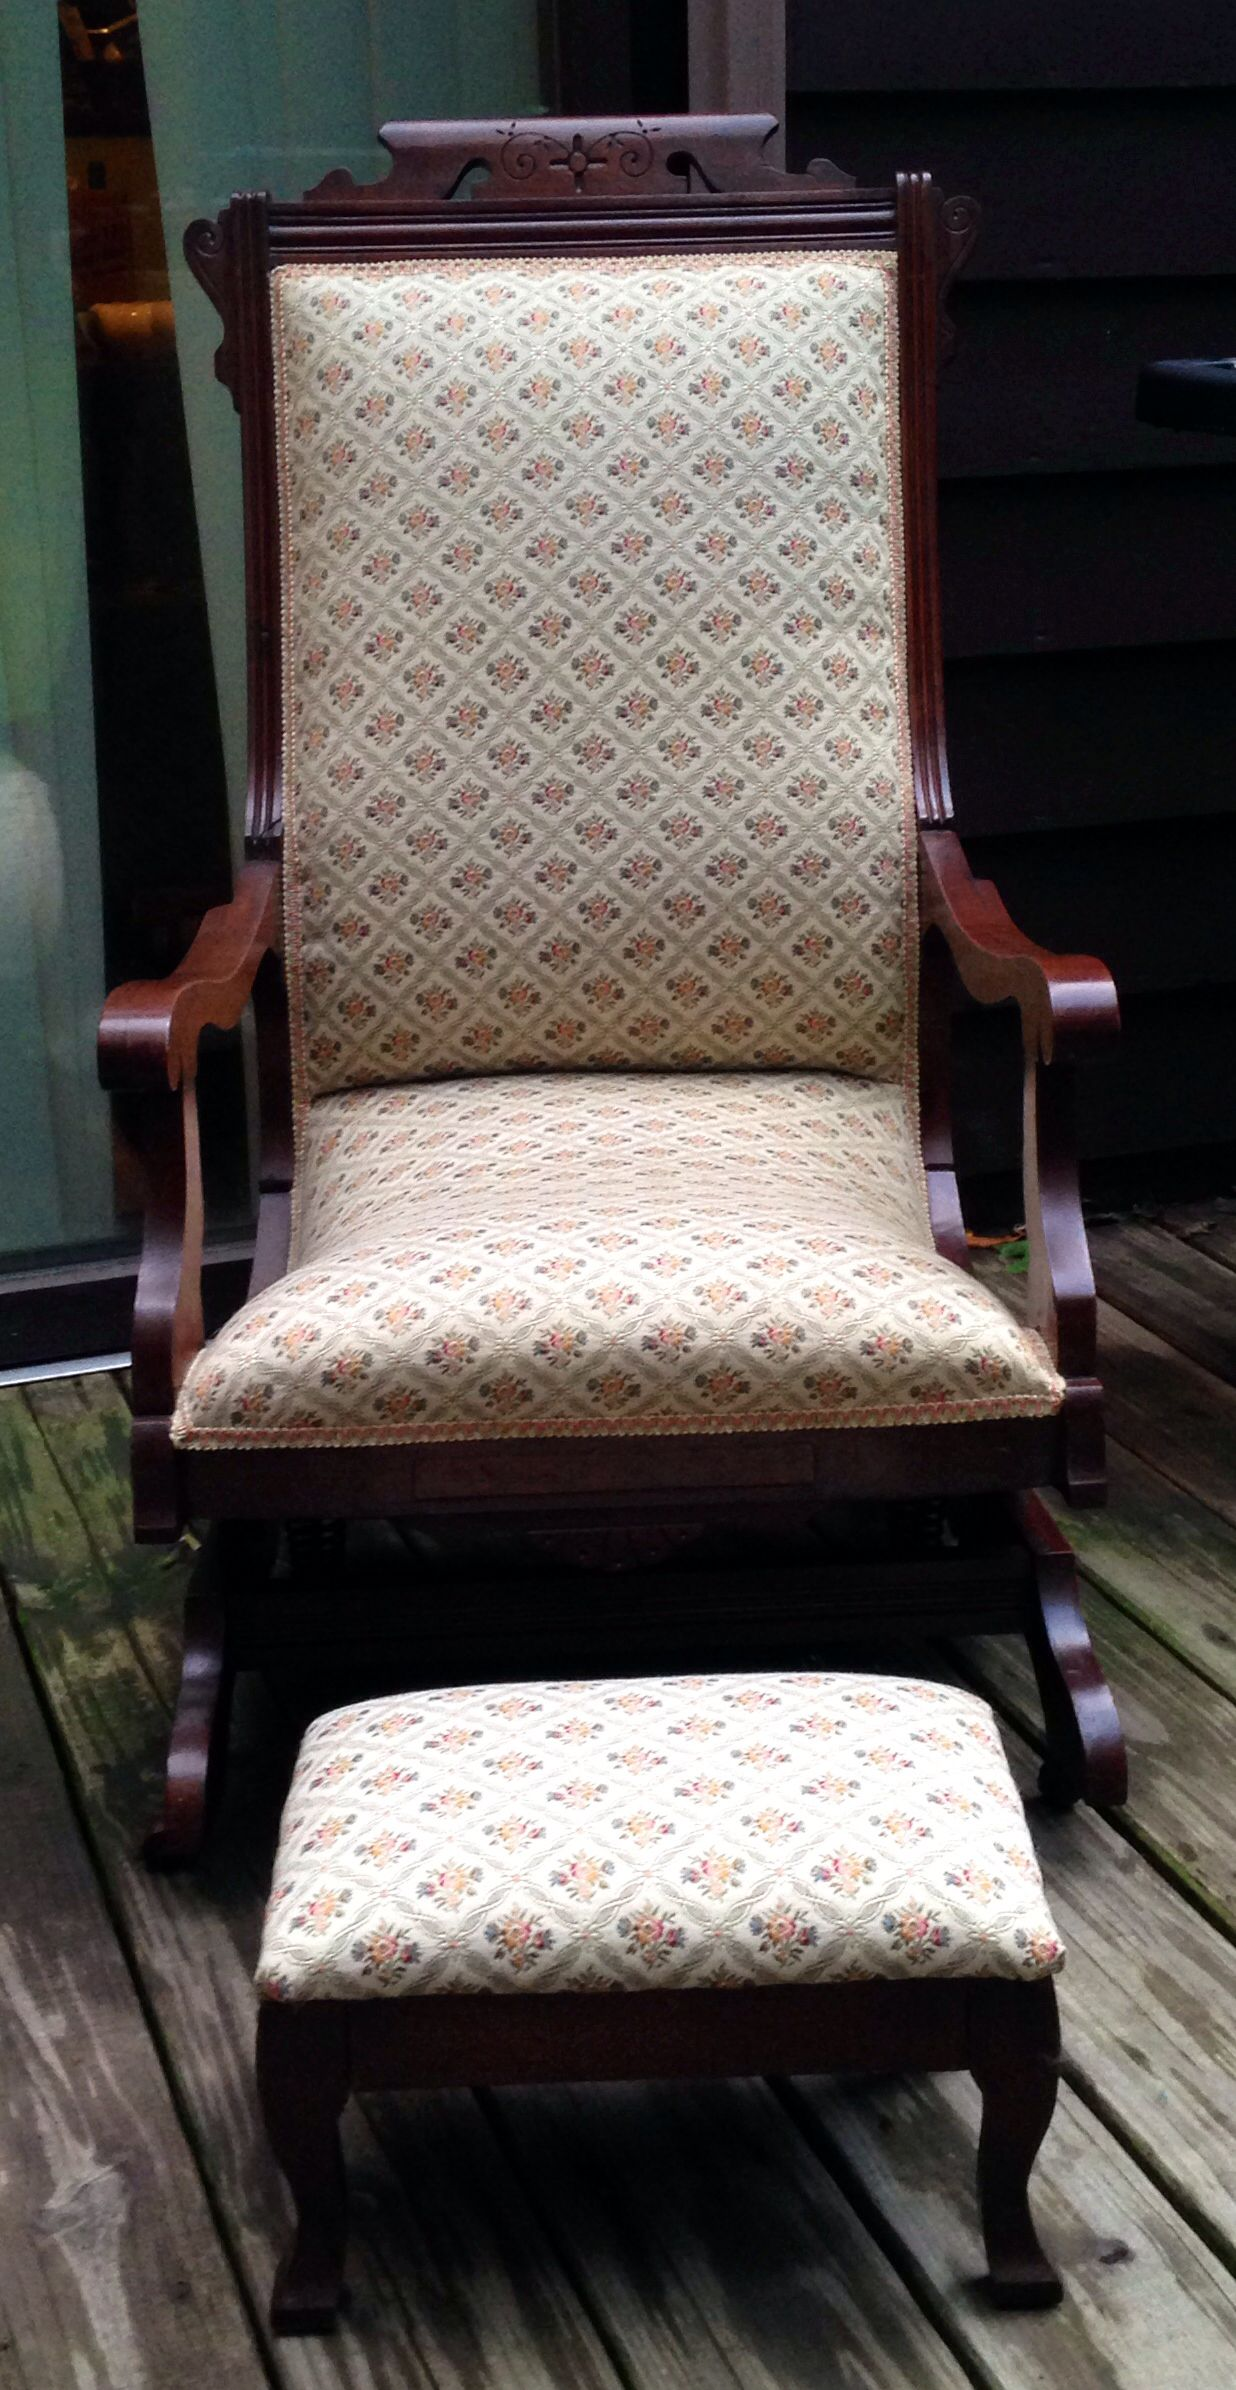 Antique Platform Rocking Chair With Springs Ez Hang Chairs Loveseat Instructions Victorian Eastlake And Original Wood Castors